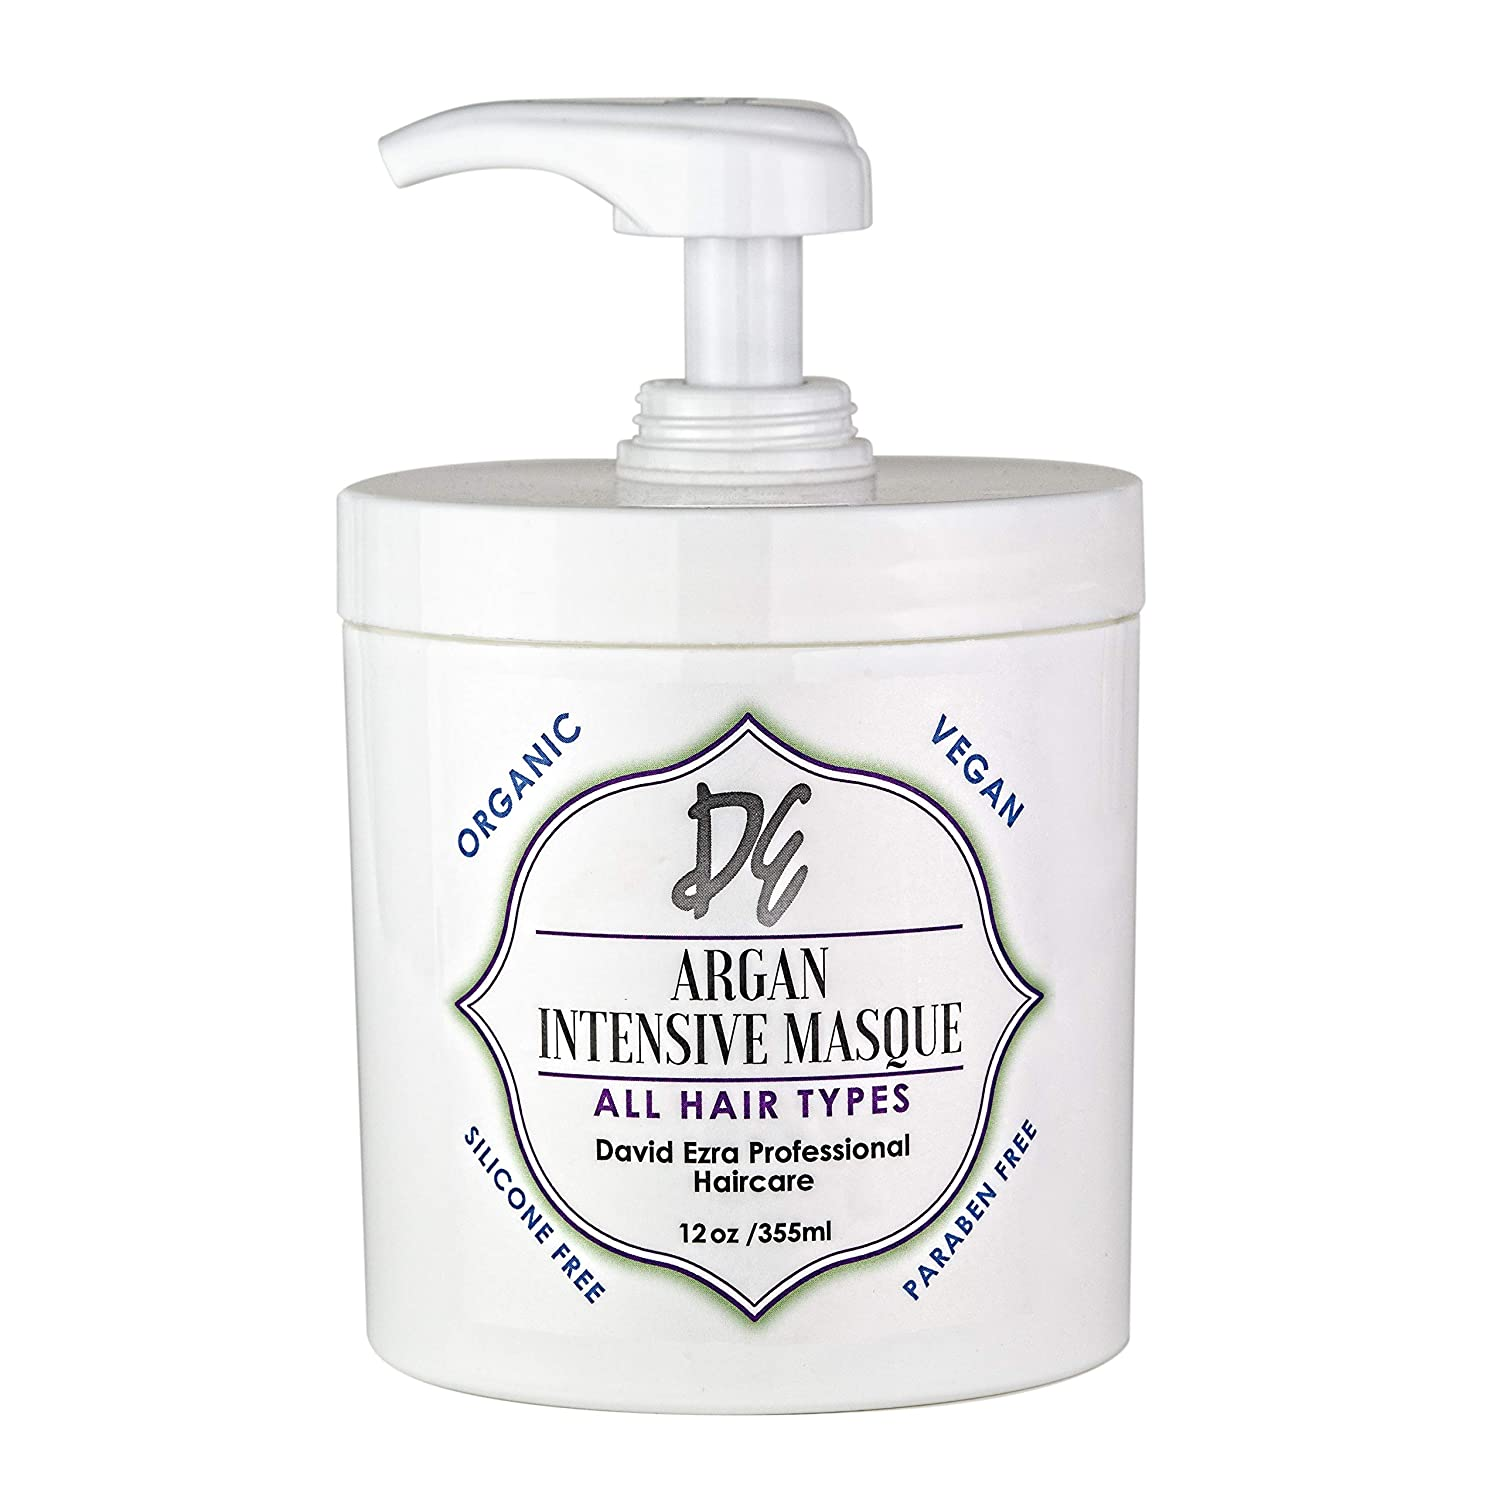 Hydrating Argan Intense Repair Hair Masque or Bombing new work for Max 46% OFF Dry Ha Damaged